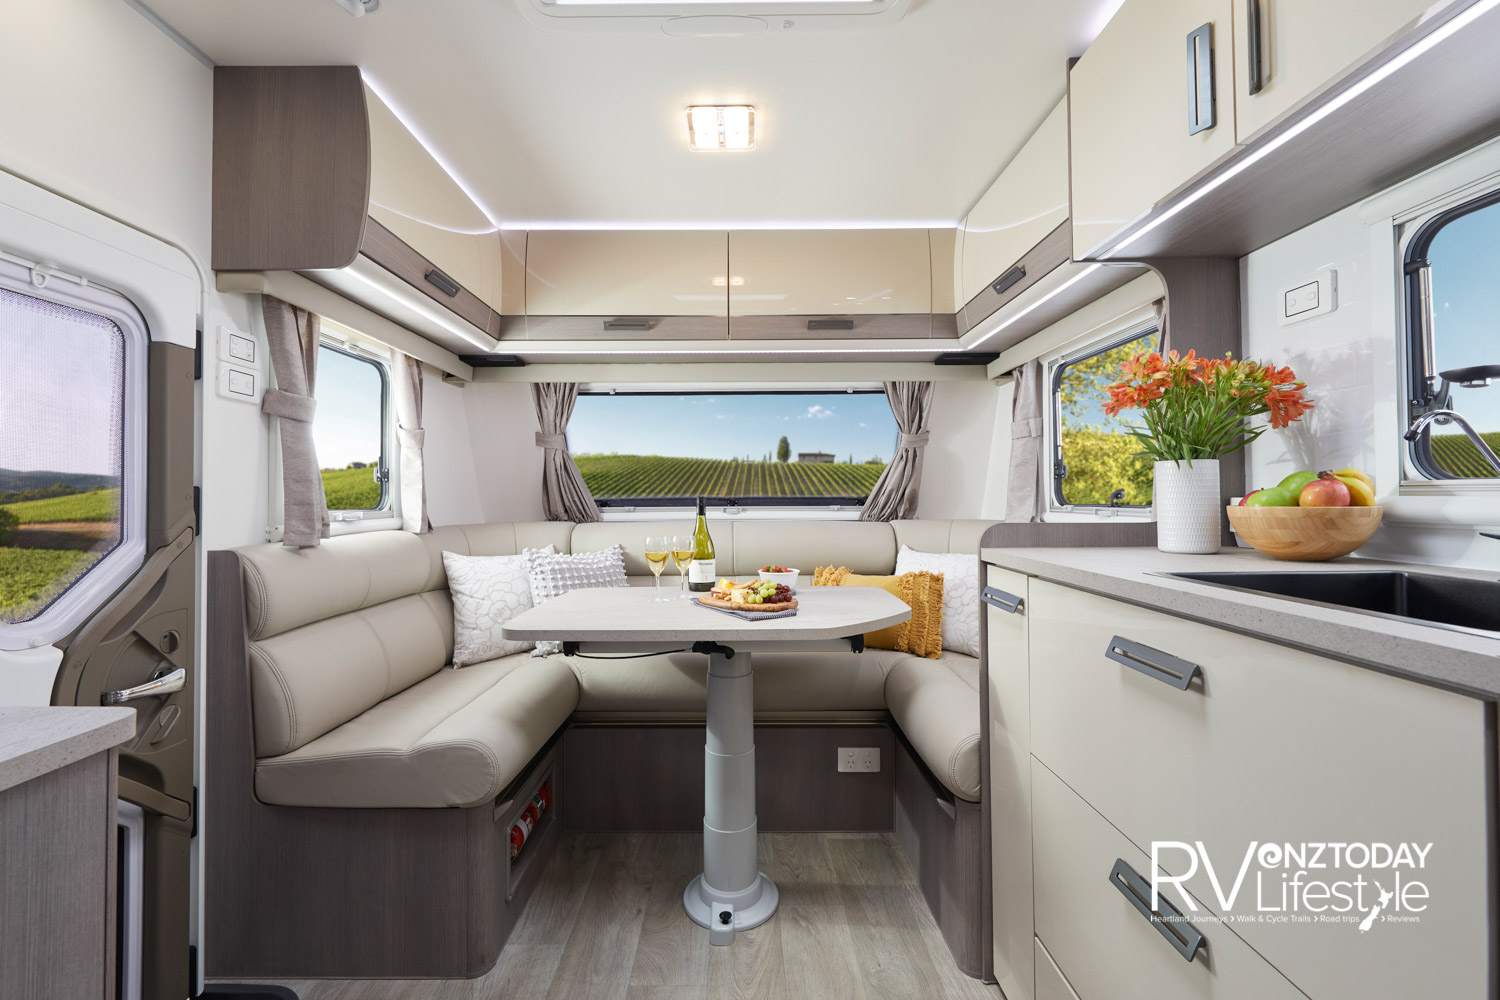 Really nice club lounge, fully height adjustable leg table. Overhead locker storage. The windows all have fly screens and blinds fitted, LED lighting throughout. The habitation entry door on the left has viewing window and screen split door action